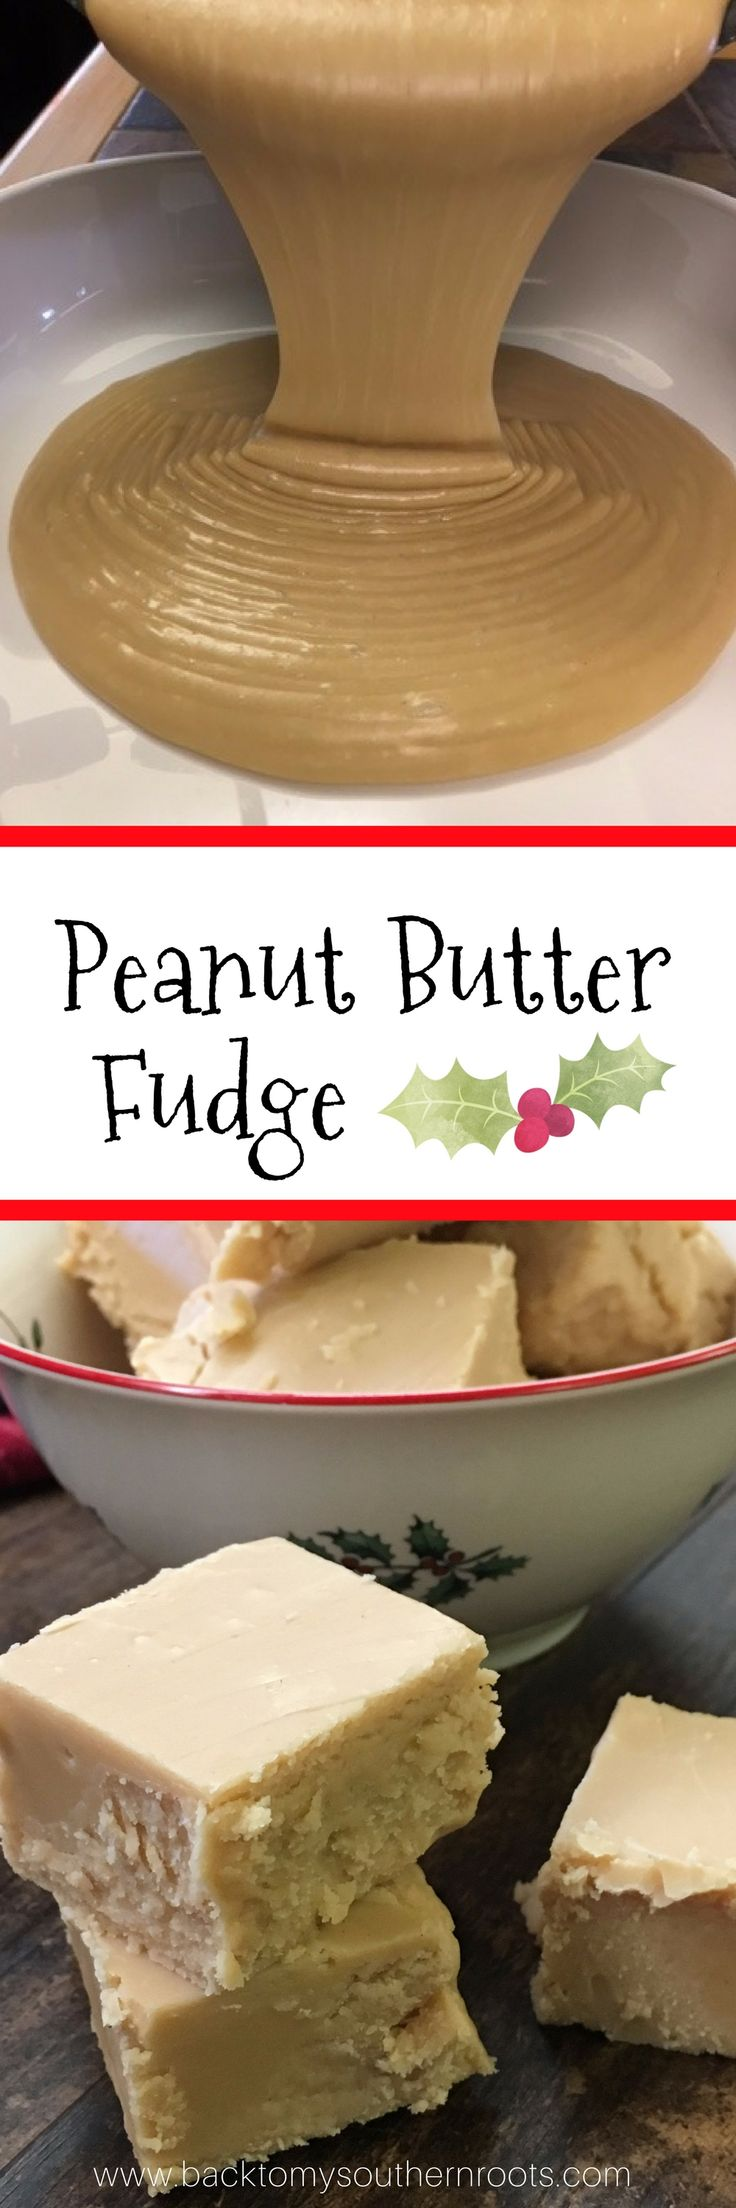 I love peanut butter fudge with marshmallow cream. It so easy to make, and makes a great dessert for Thanksgiving and Christmas. It's also a cheap and wonderful gift for teachers, neighbors, and friends.